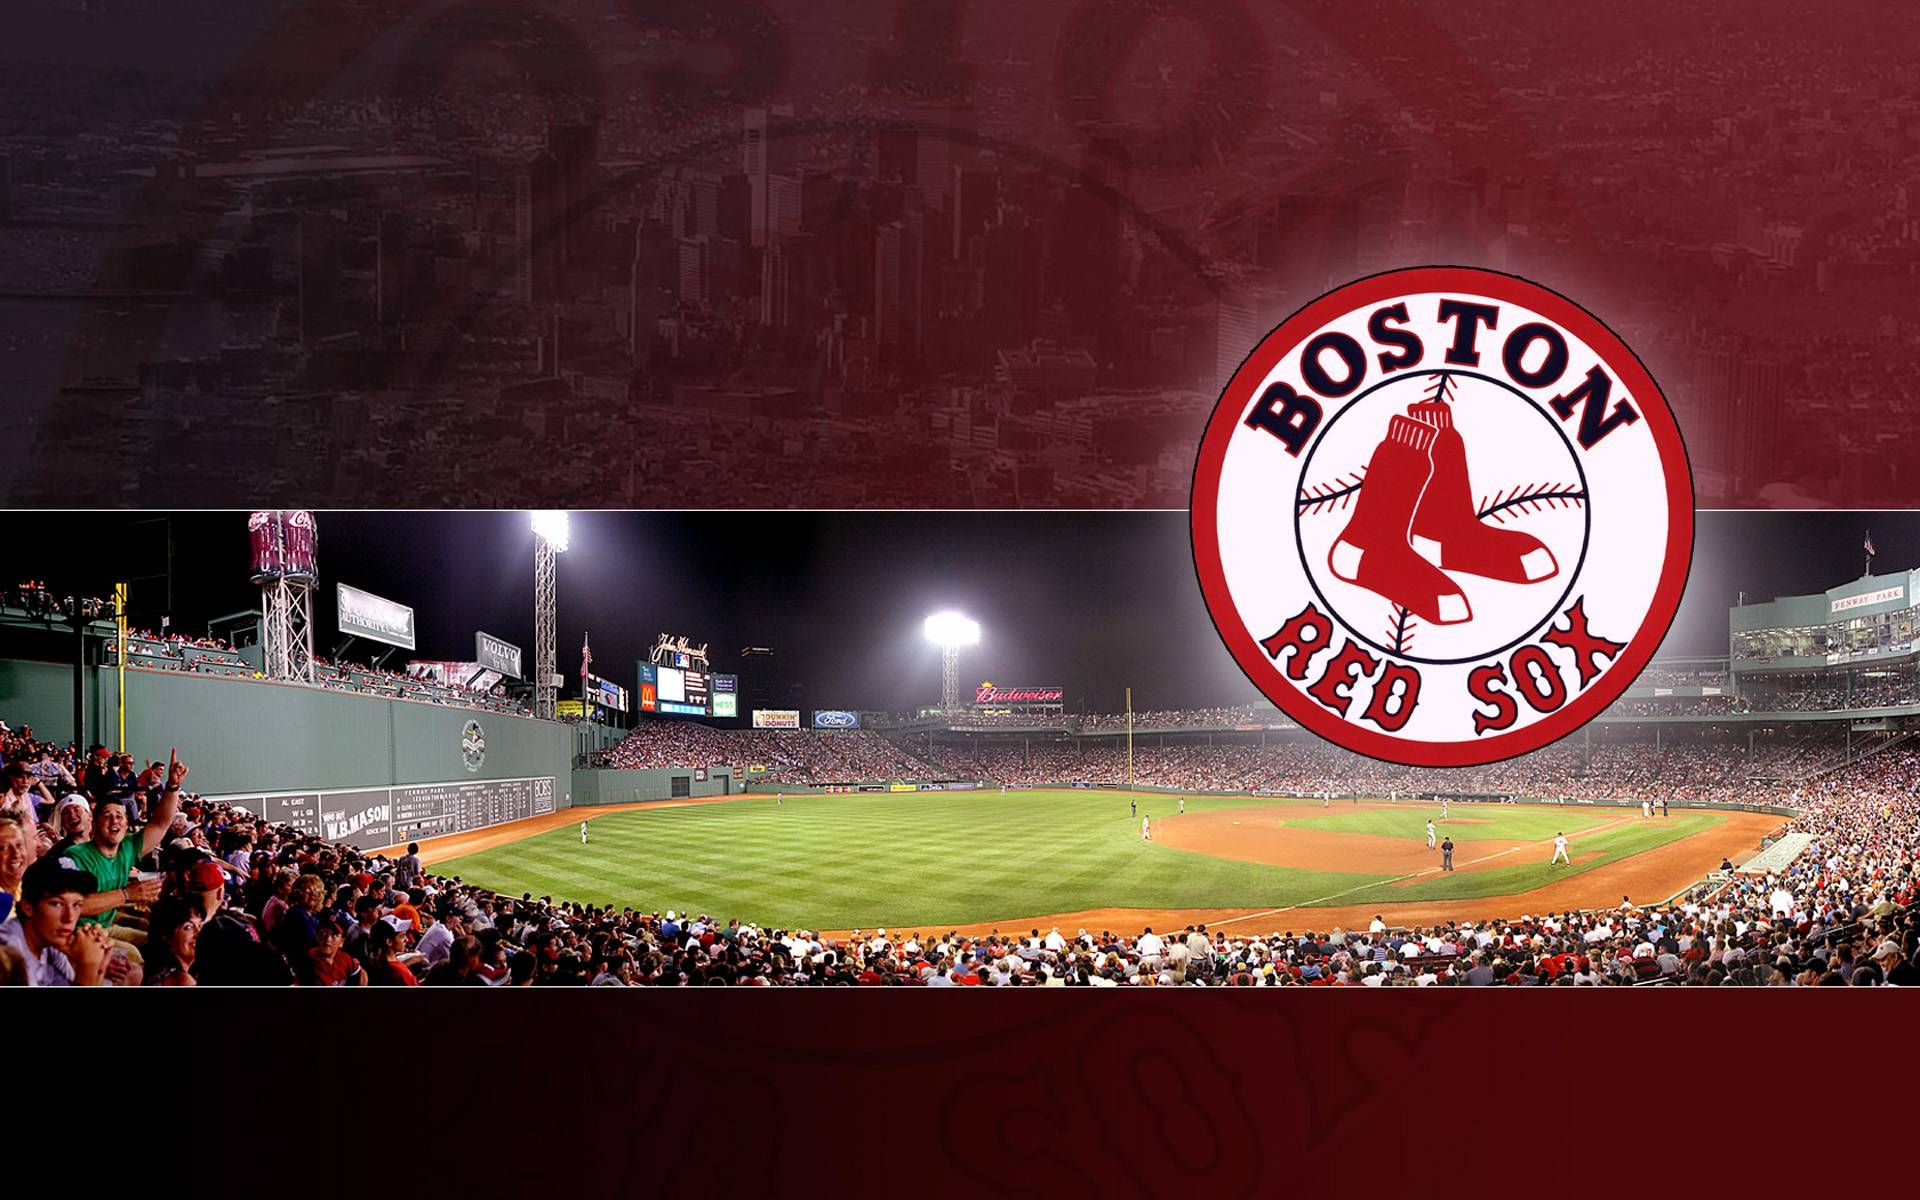 Boston Red Sox Wallpaper | Free Download Clip Art | Free Clip Art Regarding Newest Red Sox Wall Art (View 14 of 23)